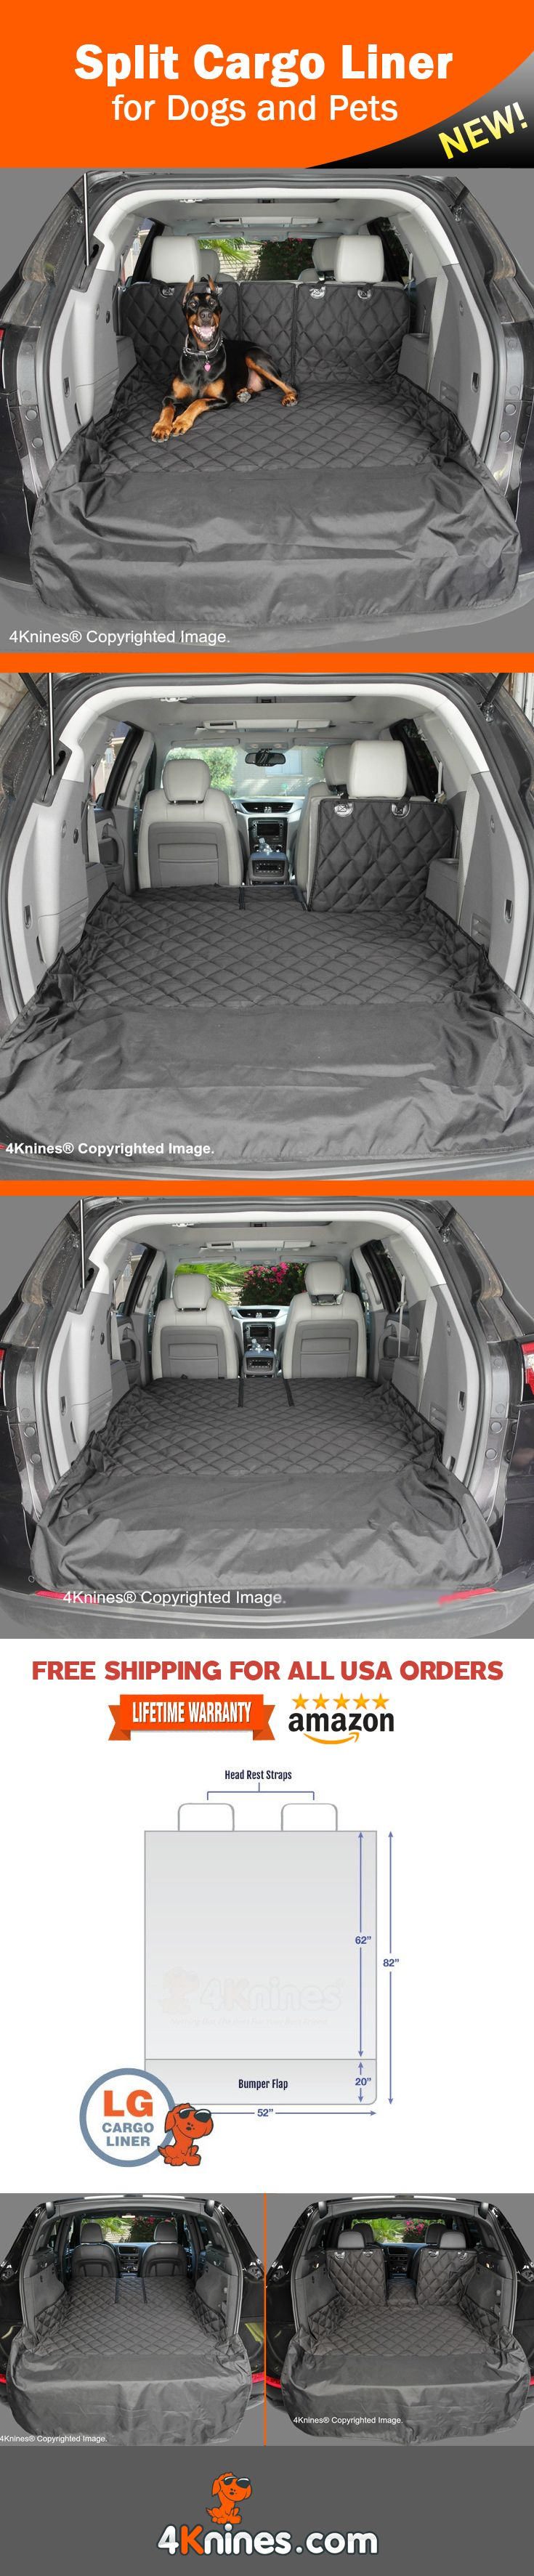 Protect your Cargo Area from fur and dirt with a 4Knines Cargo Liner. This luxury liner allows for use of a 60/40 or 50/50 split seat. http://4knines.com/pages/4knines-split-cargo-liner